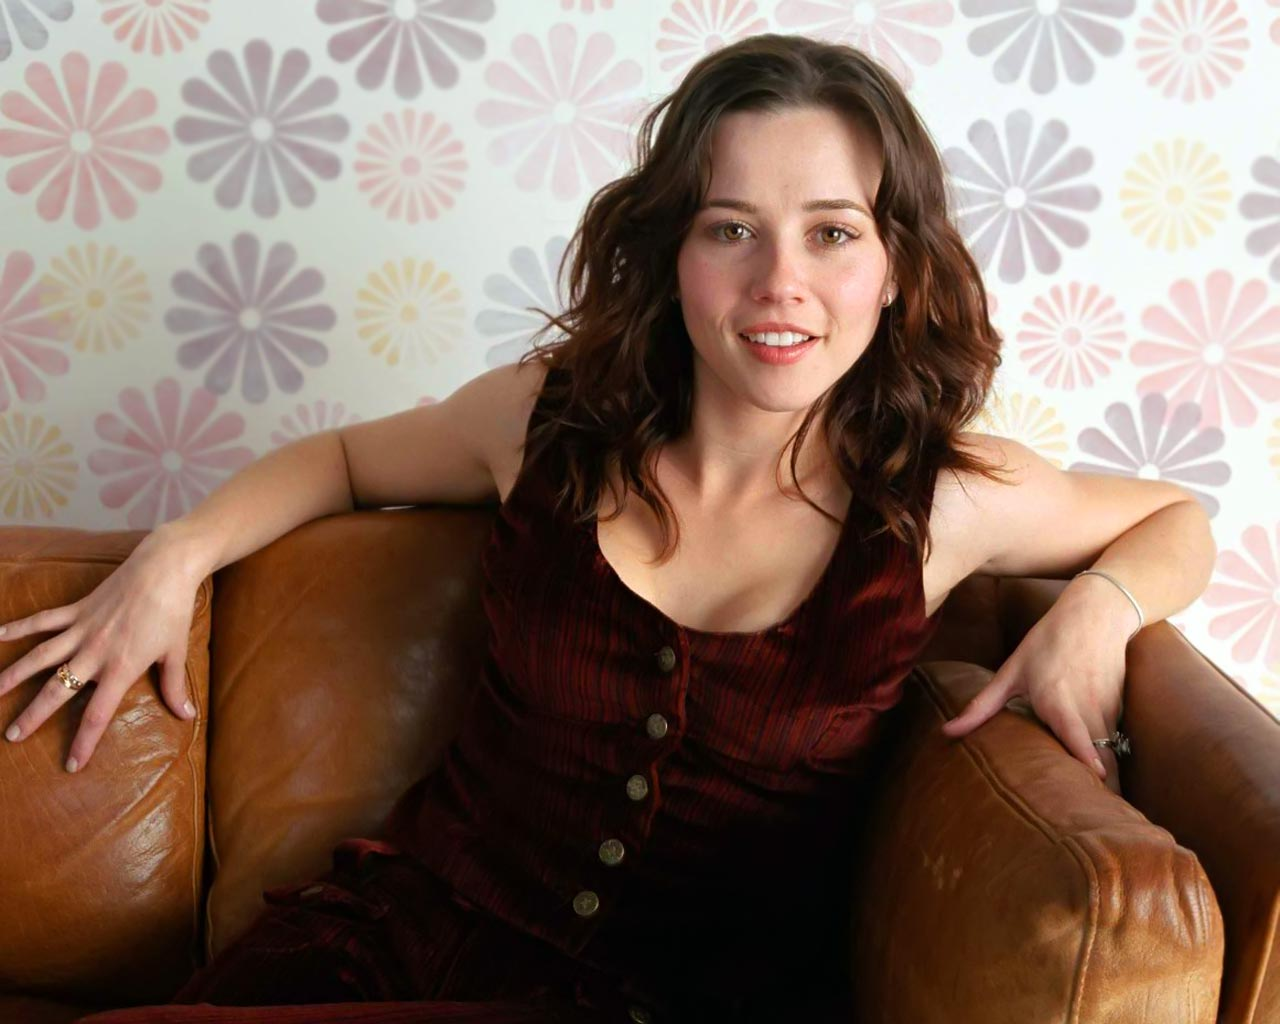 linda cardellini ellen pagelinda cardellini wallpapers, linda cardellini gravity falls, linda cardellini and jason segel, linda cardellini husband, linda cardellini insta, linda cardellini founder, linda cardellini legally blonde, linda cardellini ellen page, linda cardellini freaks and geeks, linda cardellini instagram, linda cardellini avengers